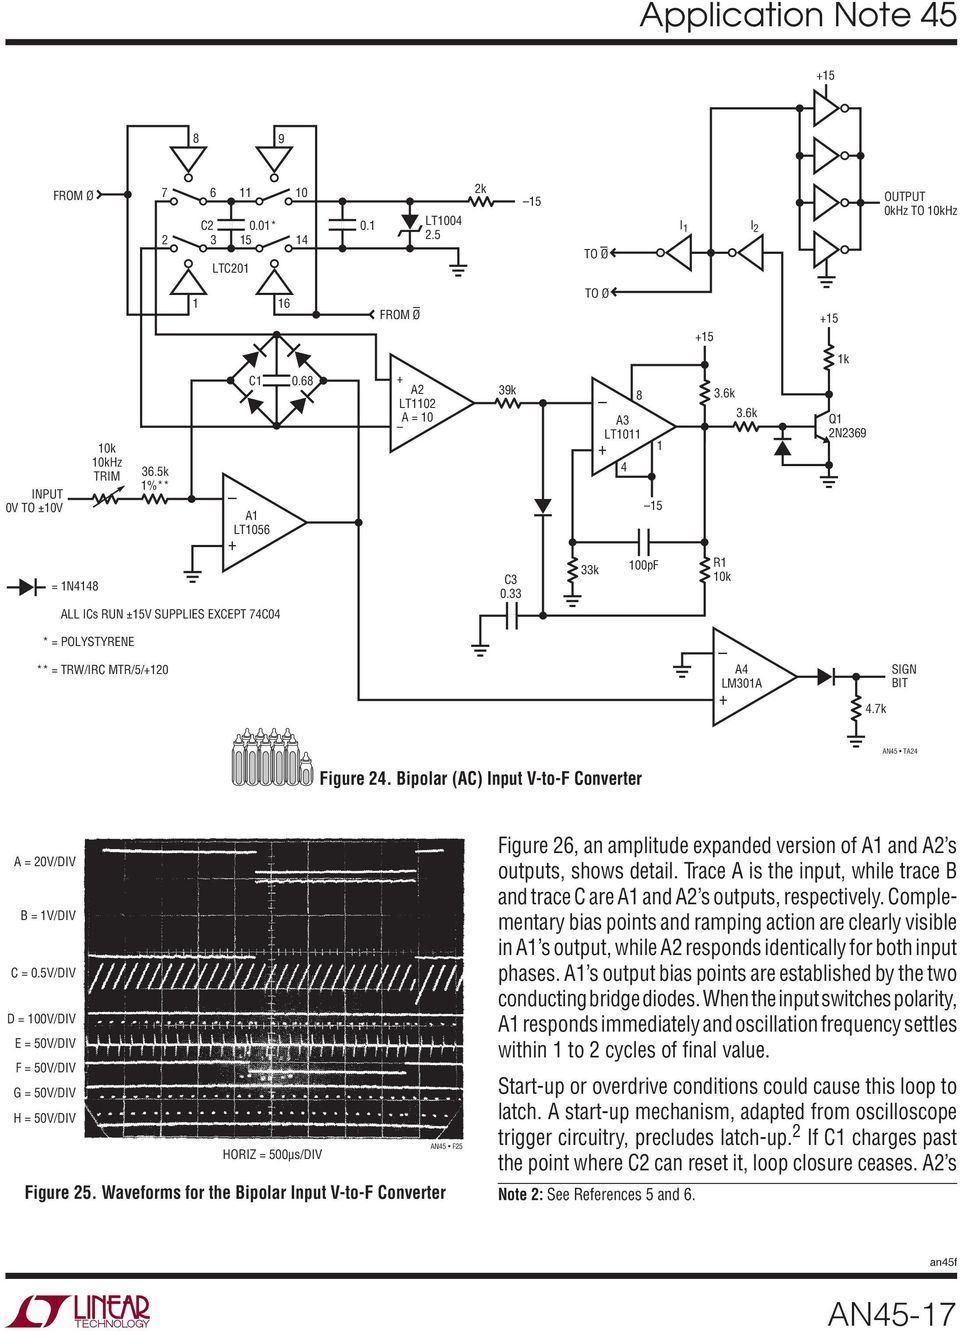 Application Note 45 June Measurement And Control Circuit Collection Lt1006 Precision Single Supply Op Amp Linear Technology Waveforms For The Bipolar Input V To F Converter Figure 26 An Amplitude